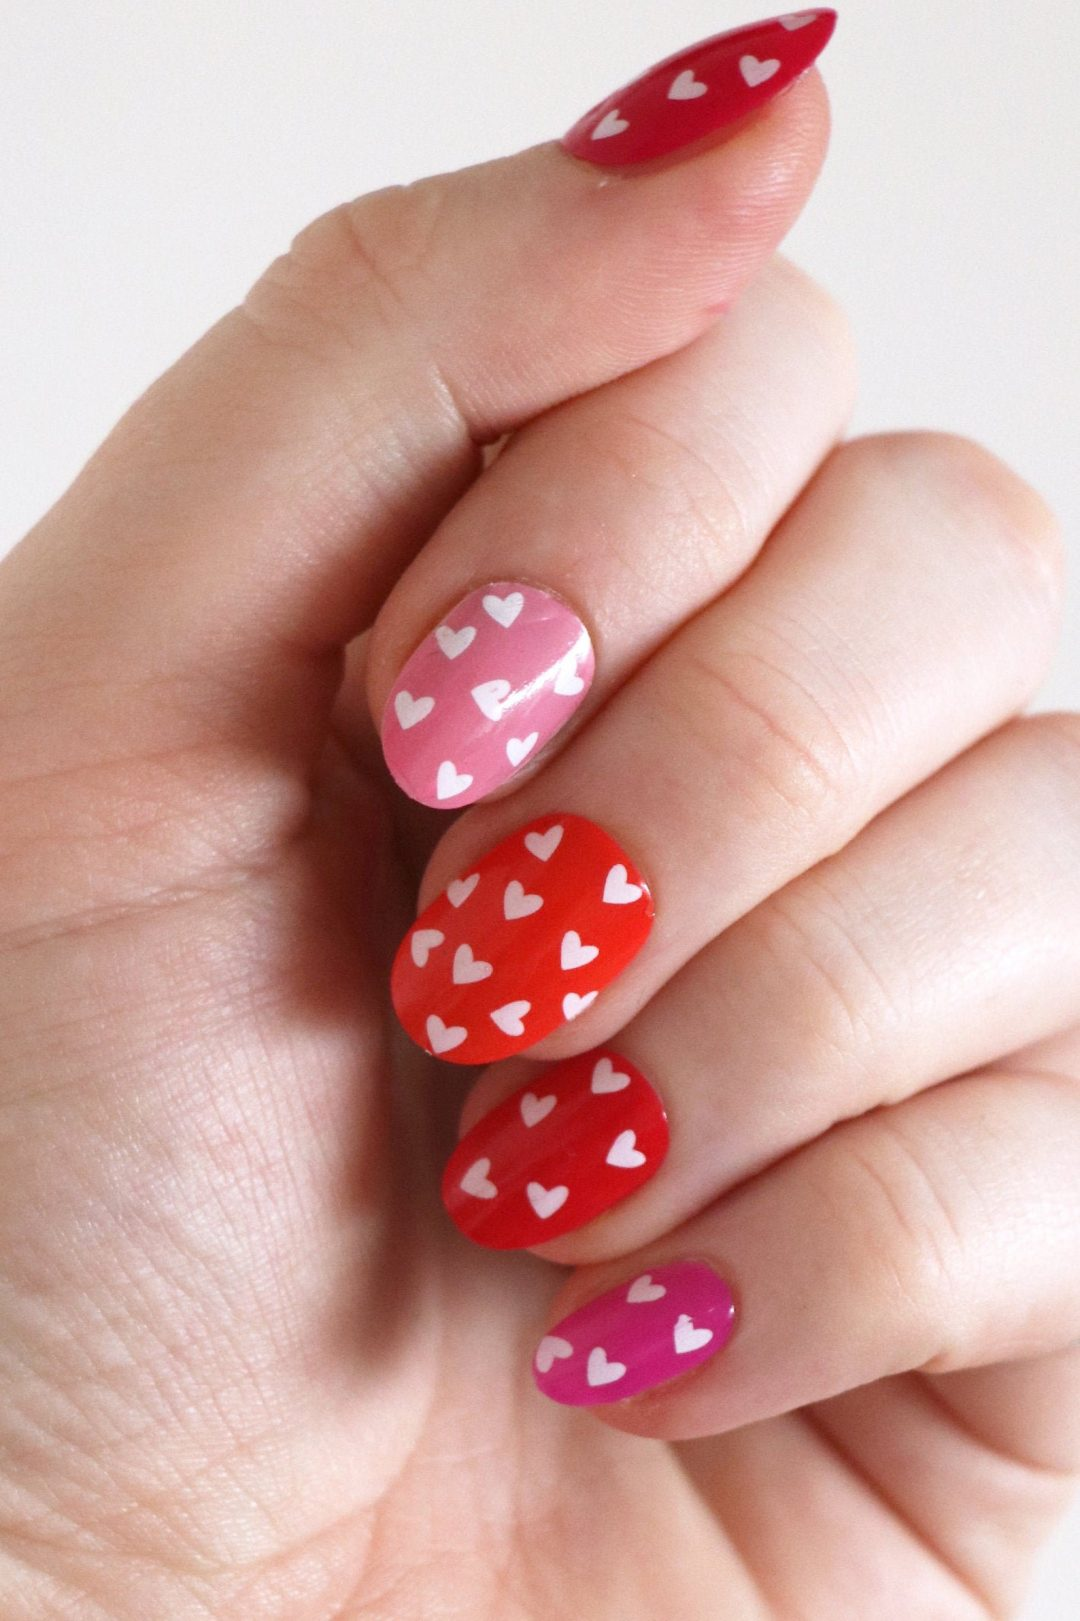 Pink and red nails with tiny heart decals